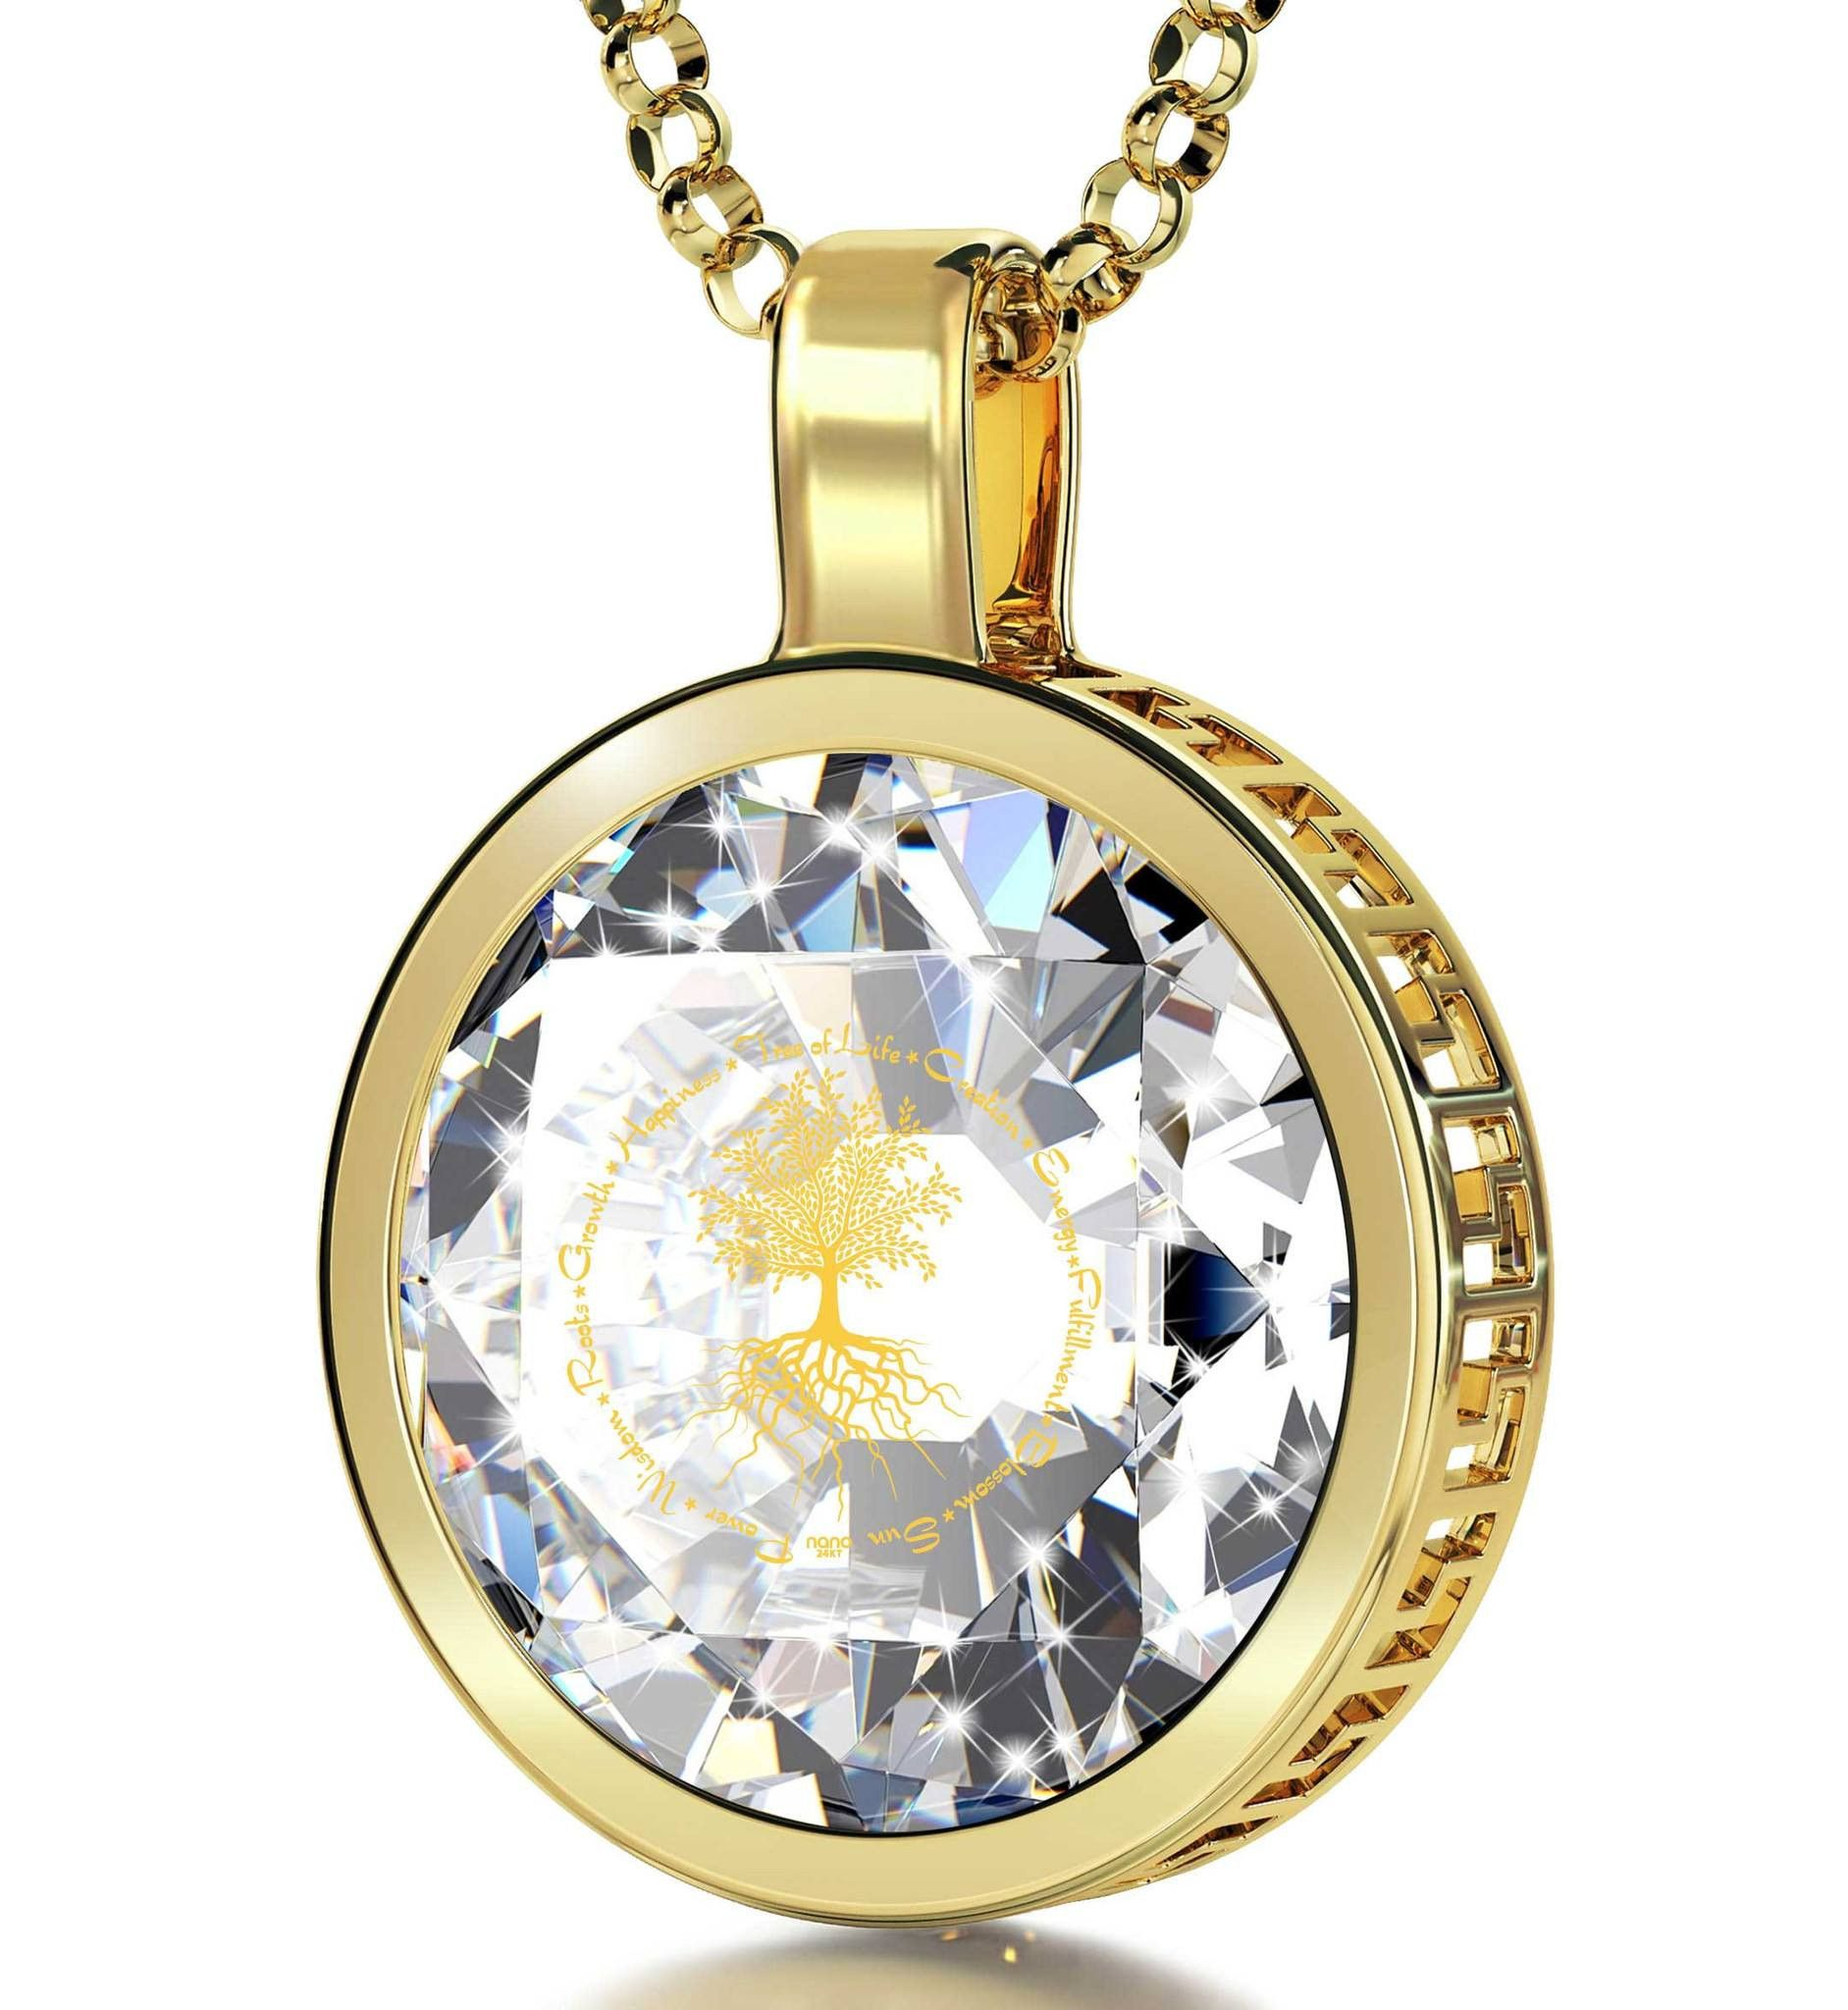 """""""Tree of Life"""", 24k Gold Plated Necklace, Cubic Zirconia. Exclusive 24 karat pure gold inscription Cubic Zirconia Stone 24k Gold Plated round frame (23mm x 18mm) Gold Filled Italian Rolo chain, 18"""" (45cm) - Standard Size for Women Celebrate happiness, wisdom and growth with this unique necklace A special magnifying glass and lavish box make this extraordinary birthday present for her all the more special  Keep reading"""